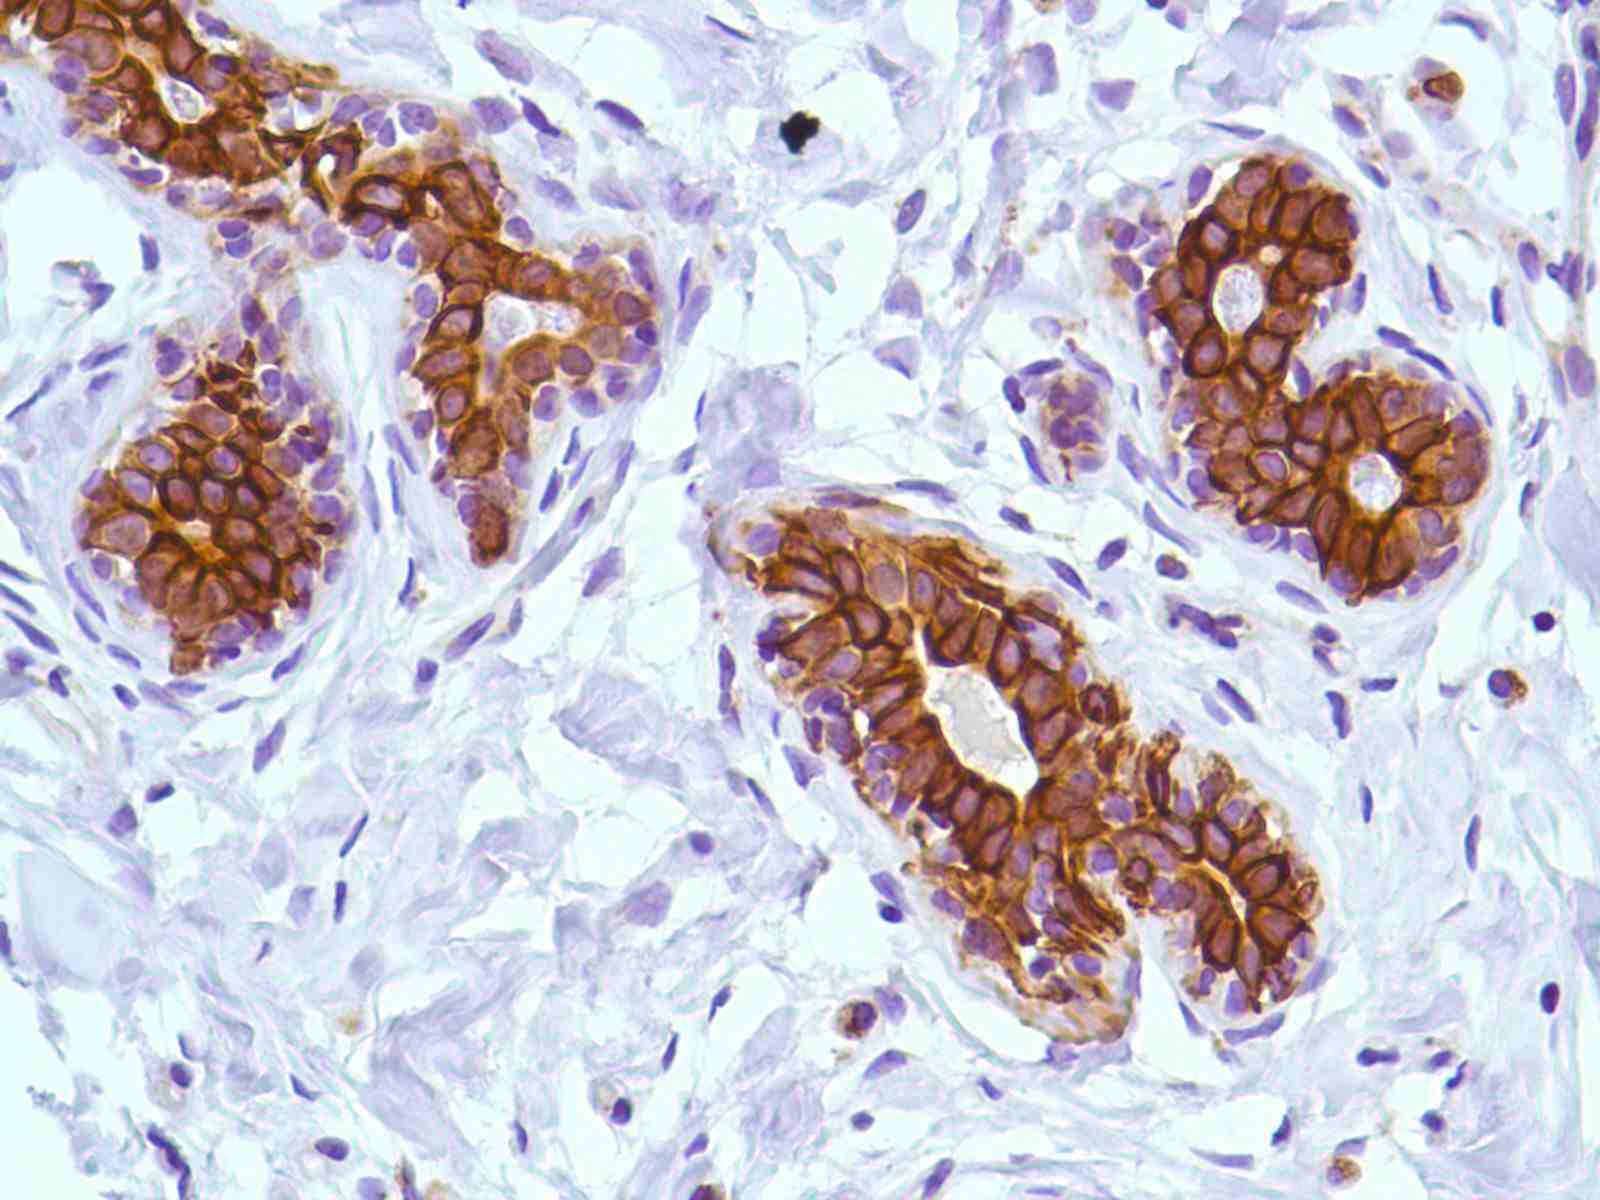 Human Breast stained with anti-Keratin 6 antibody